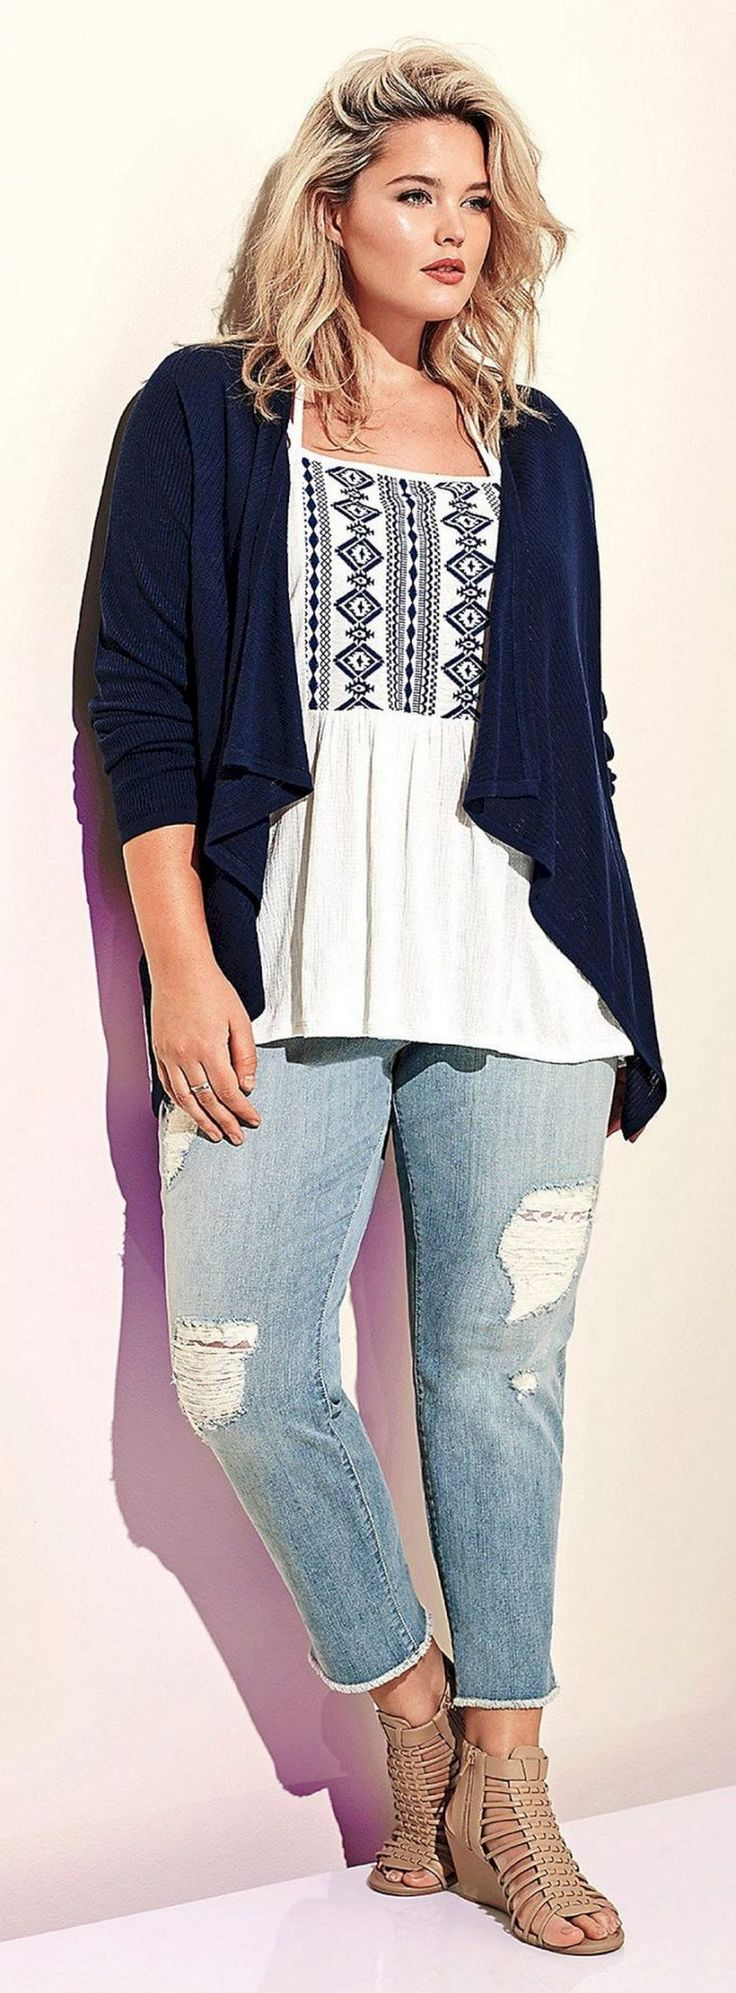 Lovely 75+ Charming Torrid Plus Size Women's Fashion Outfits Summer 2017 Collections https://www.tukuoke.com/75-charming-torrid-plus-size-womens-fashion-outfits-summer-2017-collections-3441